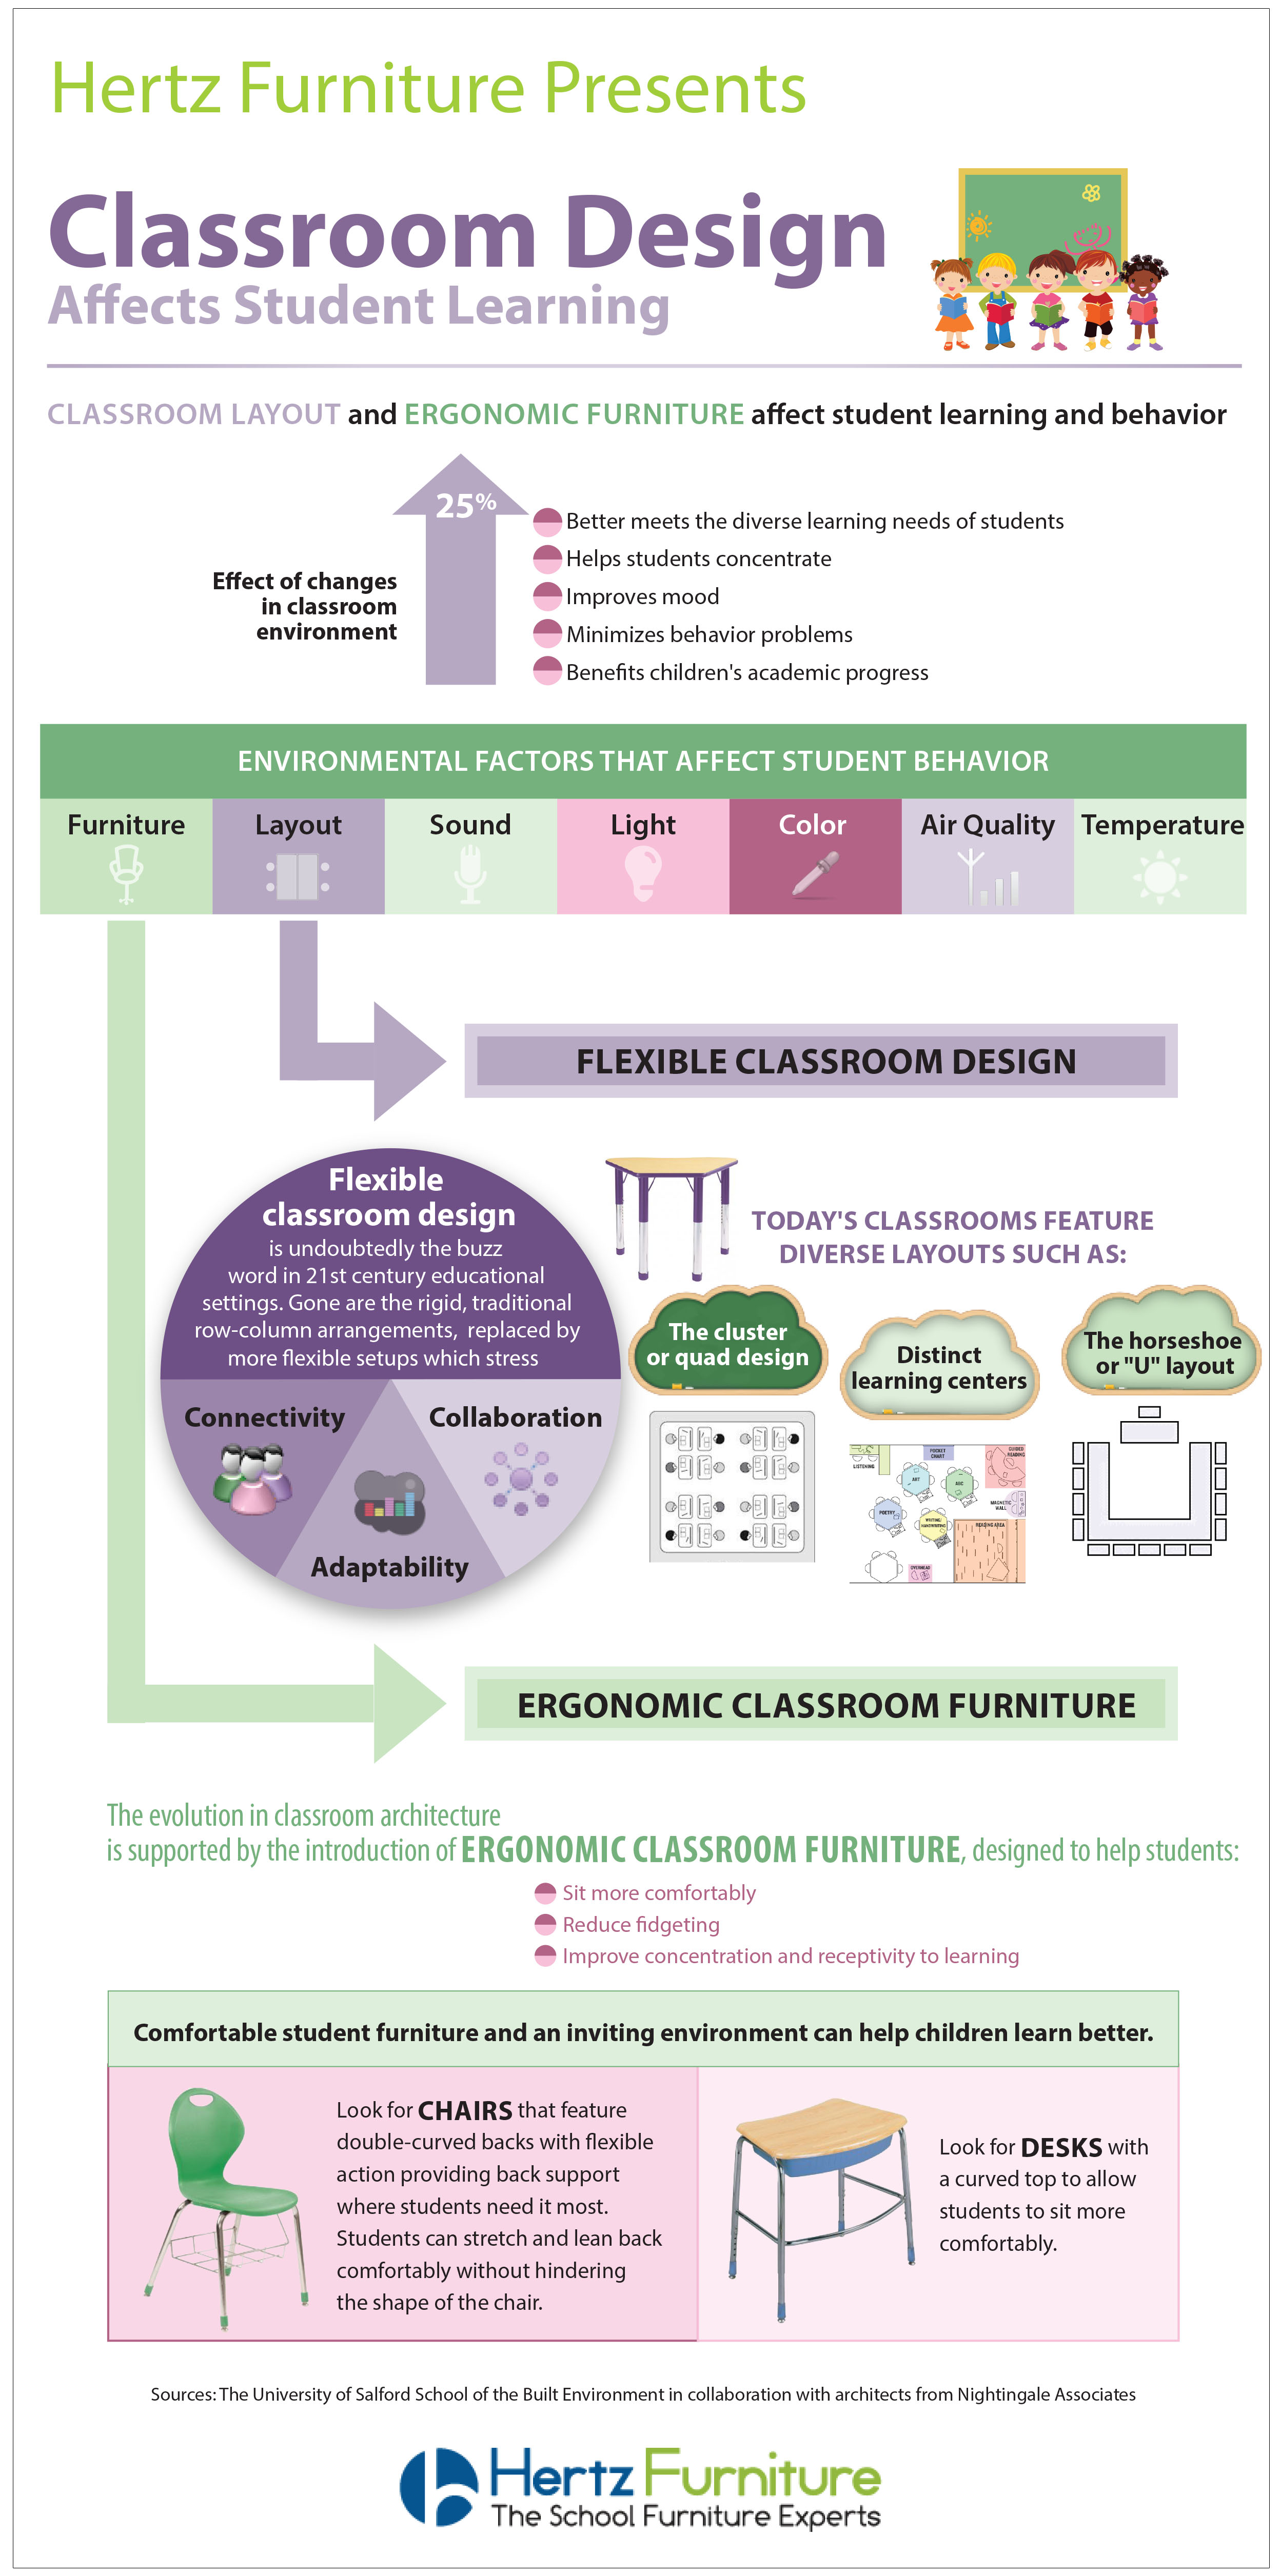 ergonomic furniture in the classroom reclining back chair info graphic design effects student learning